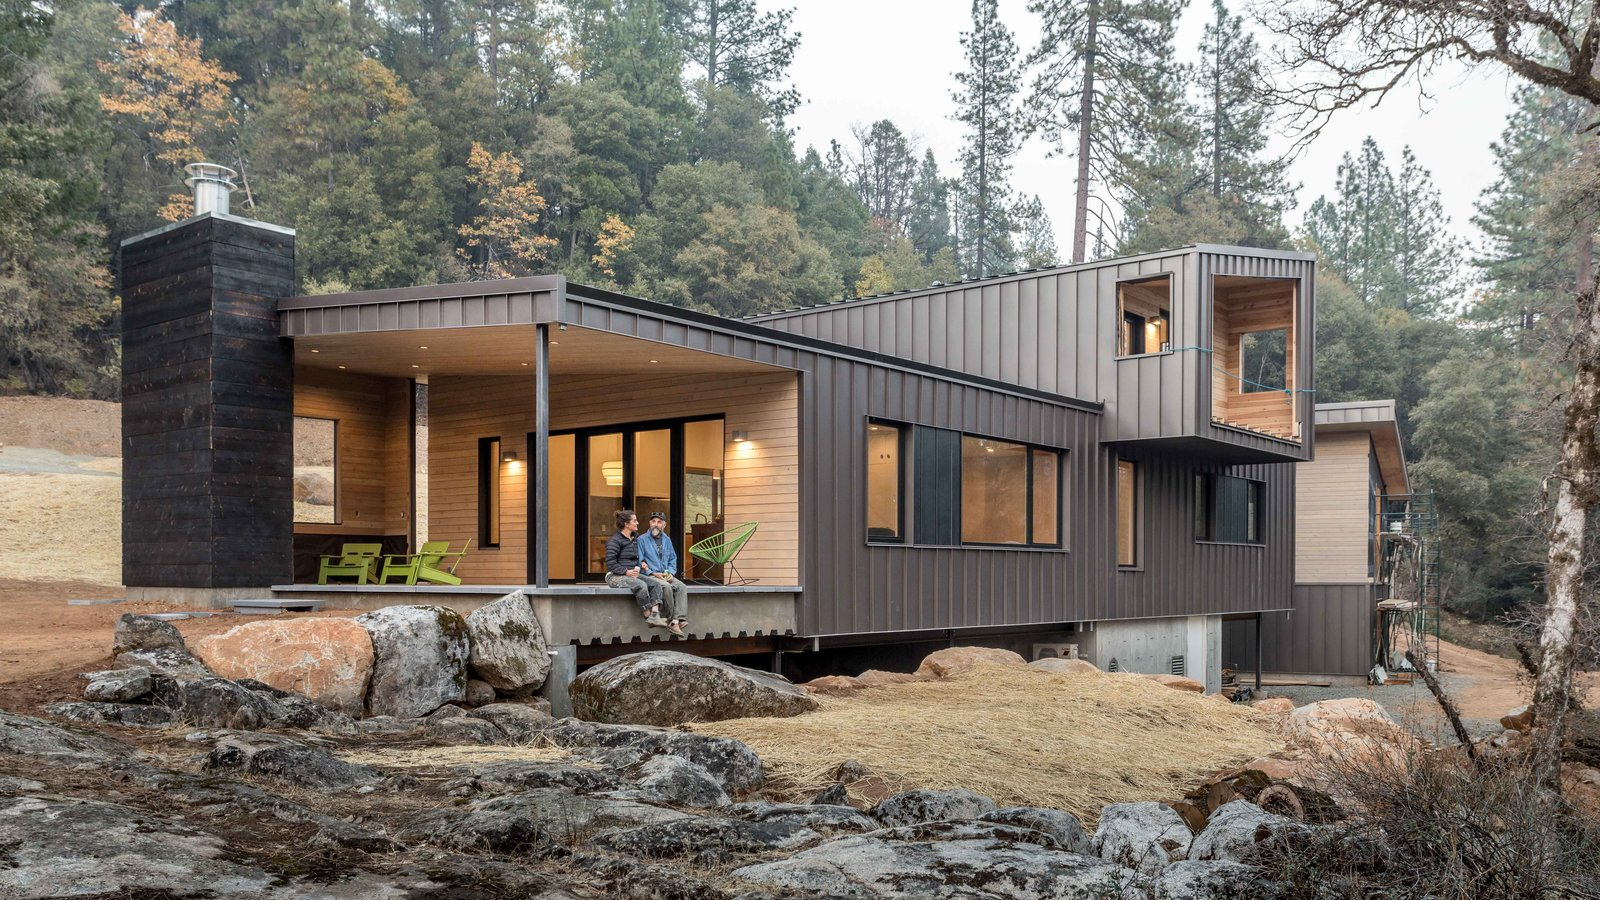 Exterior, Metal Roof Material, House Building Type, Wood Siding Material, Shed RoofLine, and Metal Siding Material Exterior view with designer and builder ... before the house was 100% completed  Best Photos from Good Haus